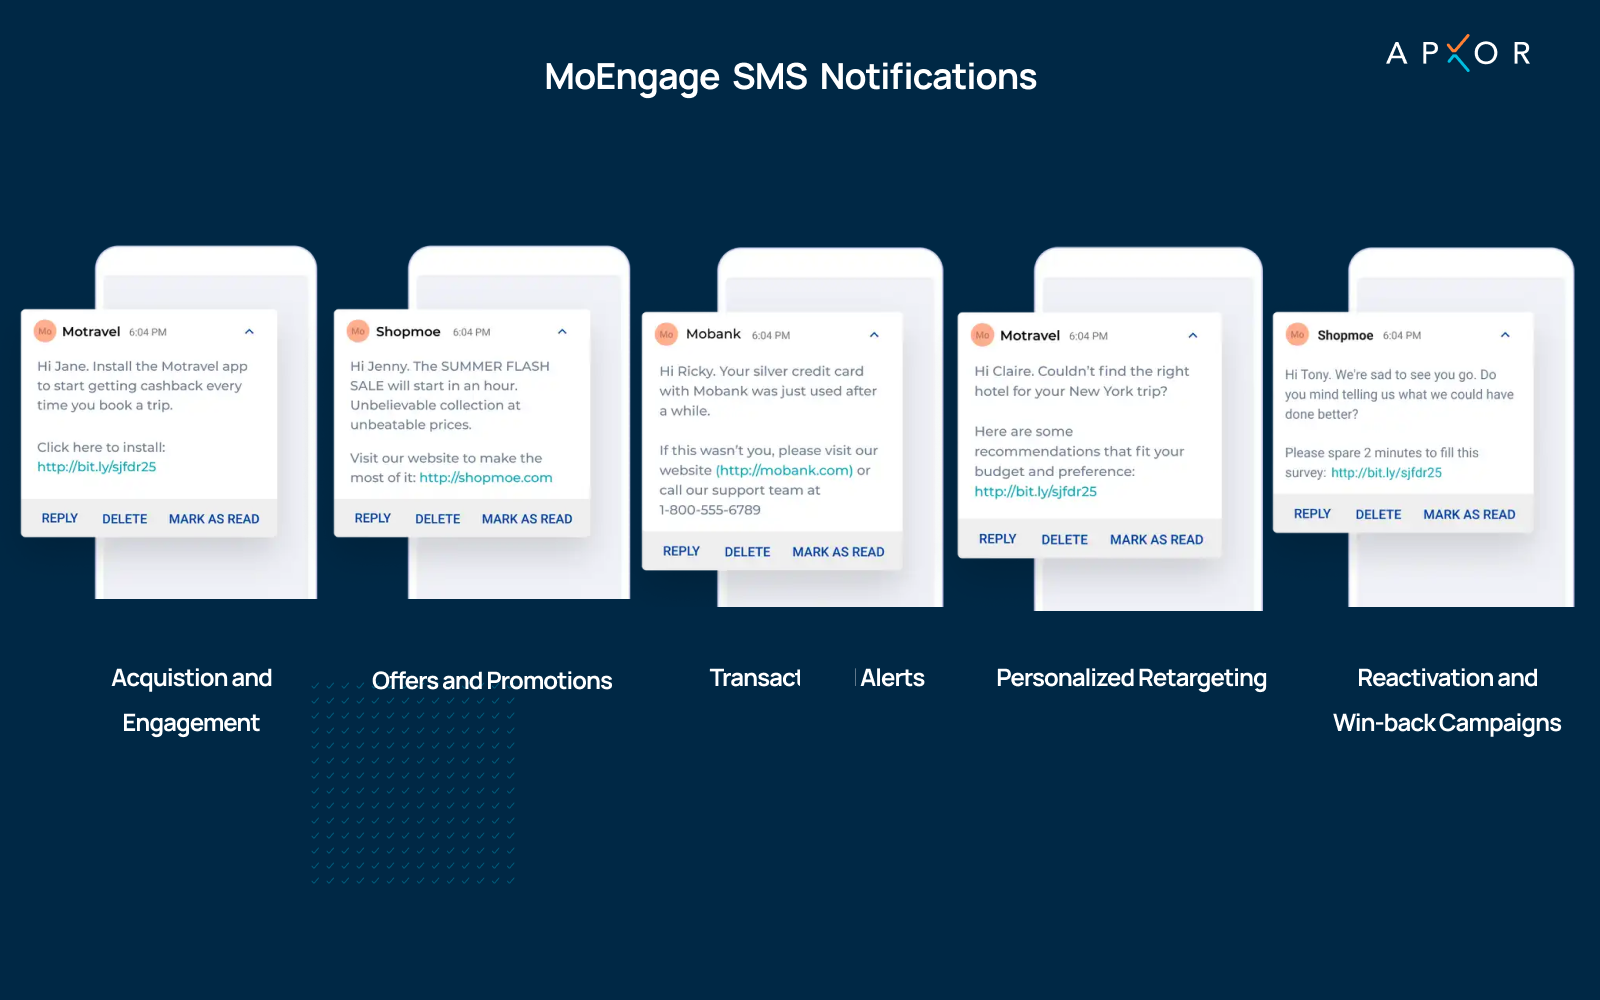 Moengage SMS Notifications - Apxor